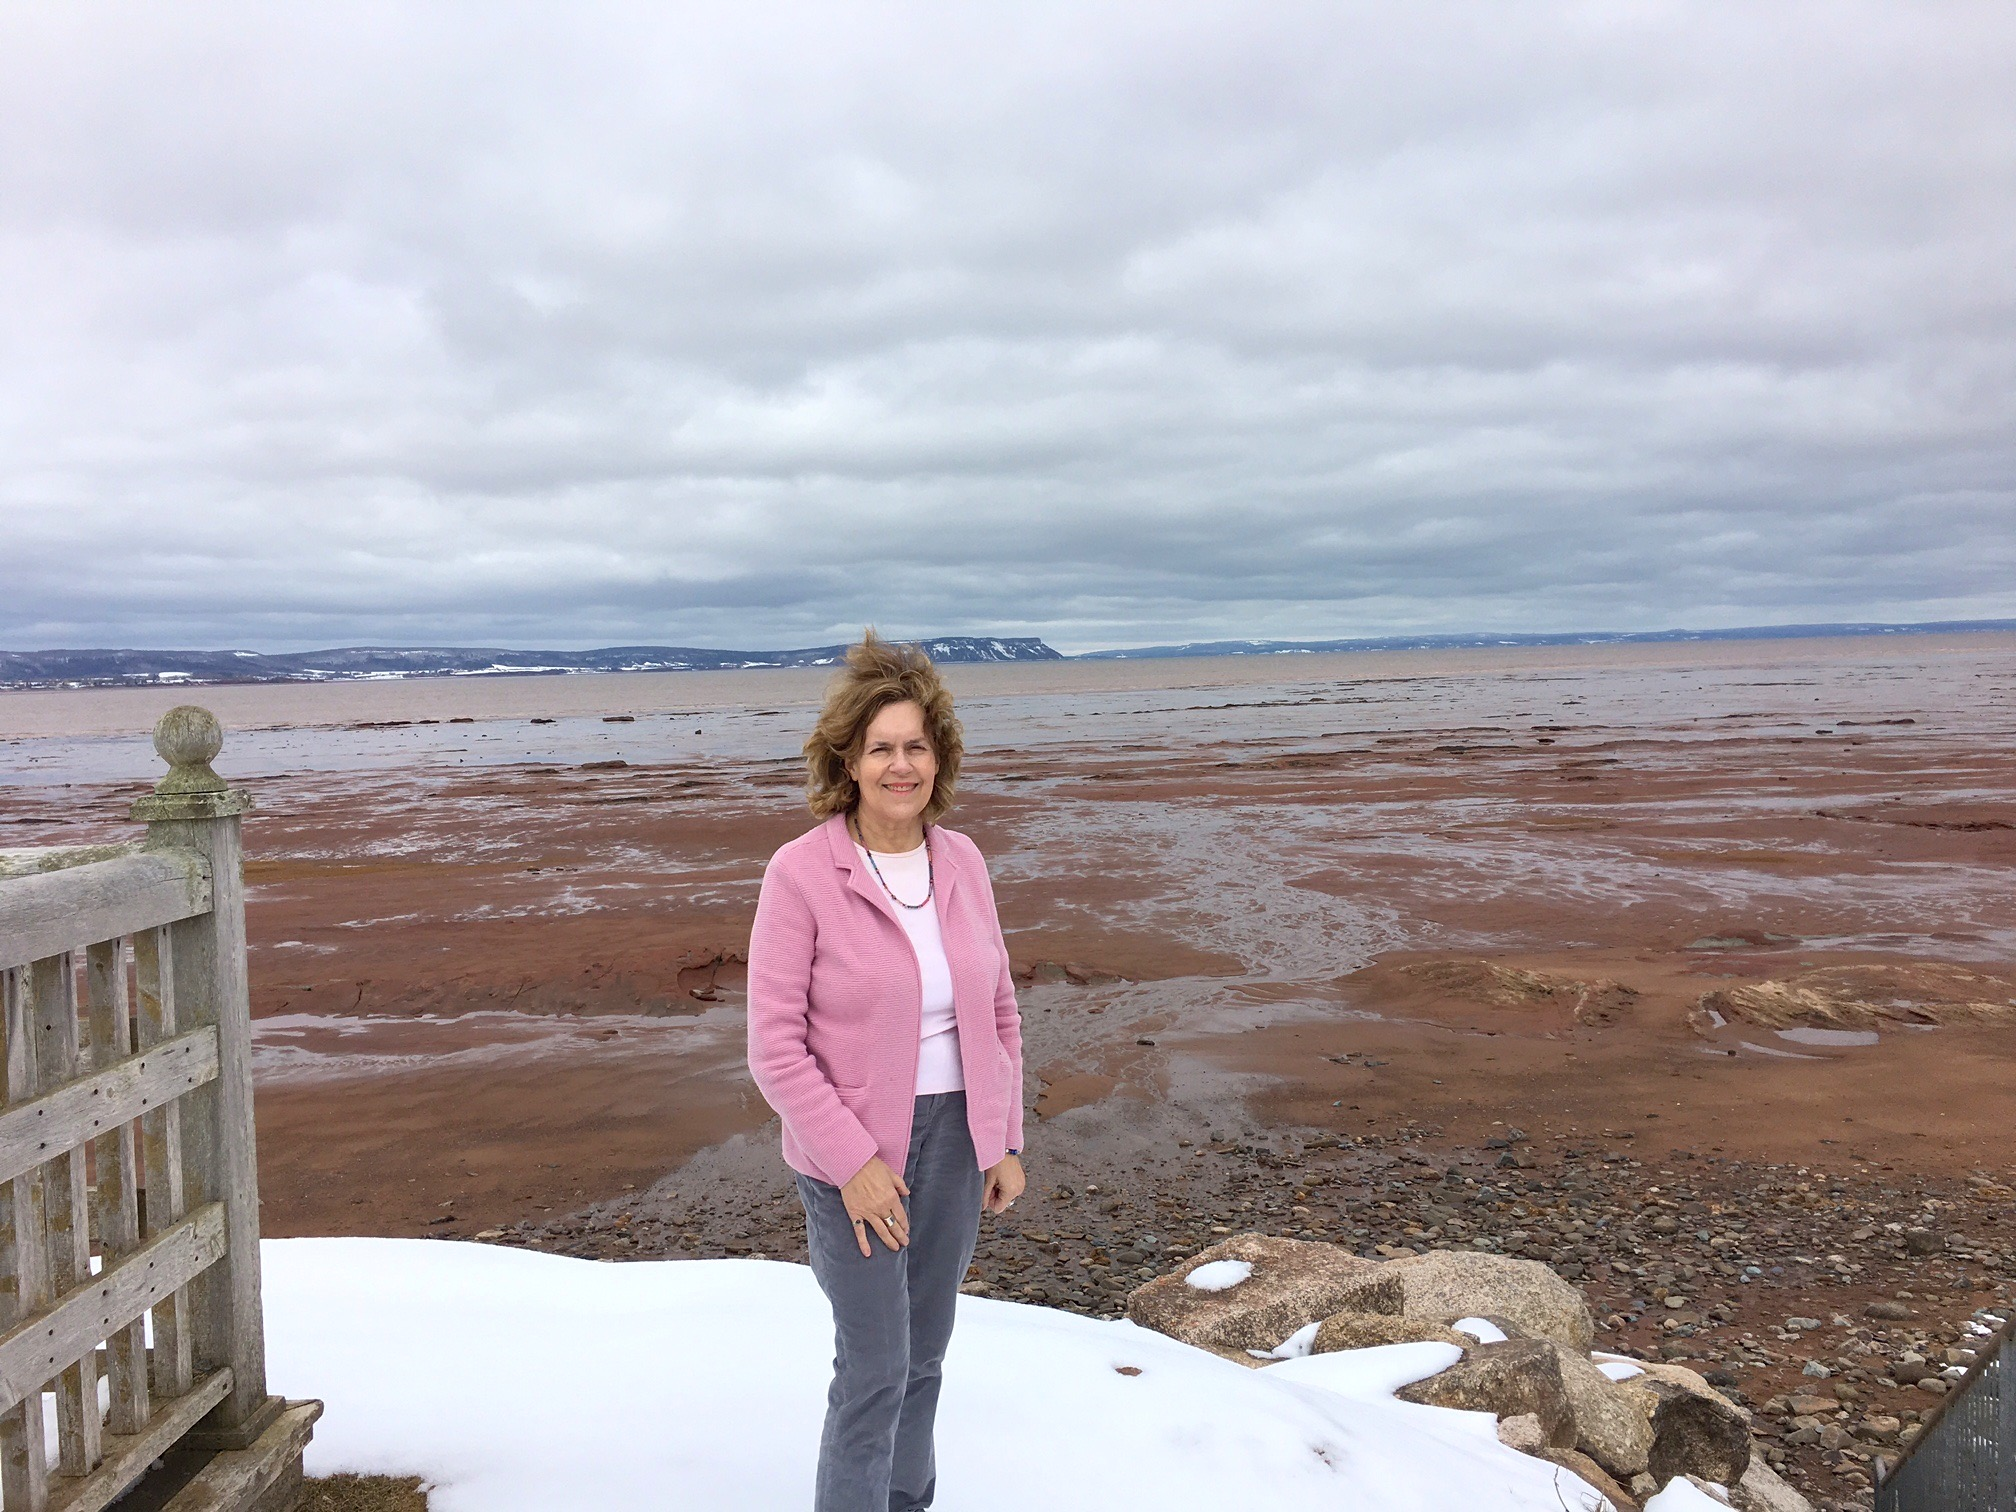 Lorraine at the Bay of Fundy, famous for its tides